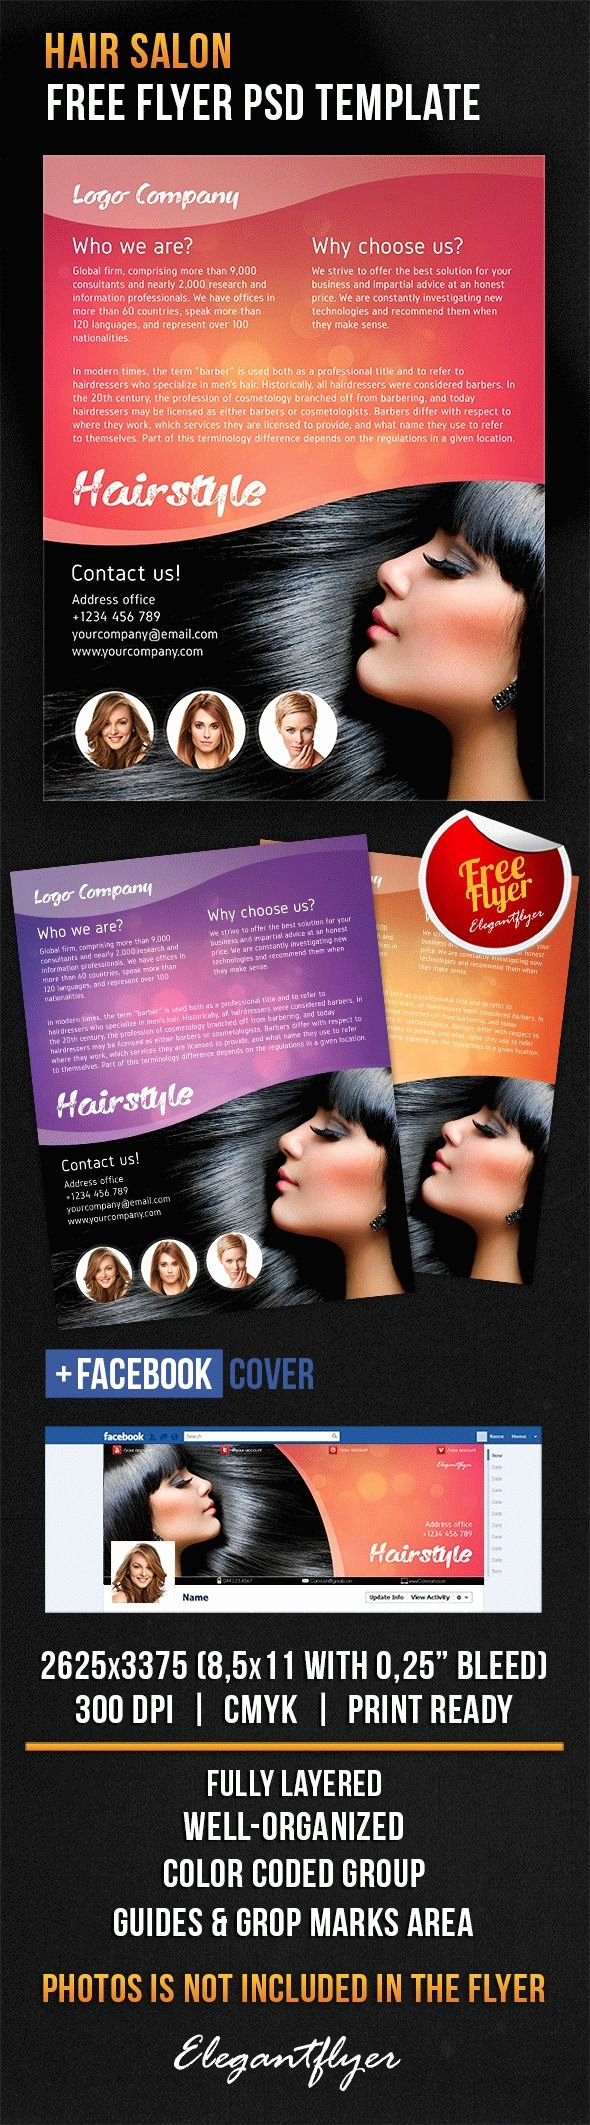 Hair Salon – Free Flyer Psd Template – by Elegantflyer